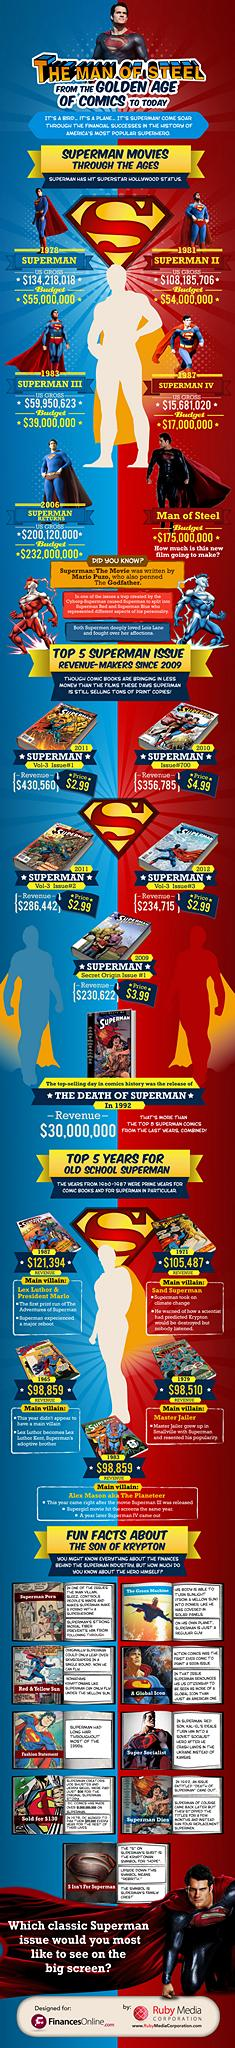 the-man-of-steel-financial-success-of-superman_51b5eeb4ed570